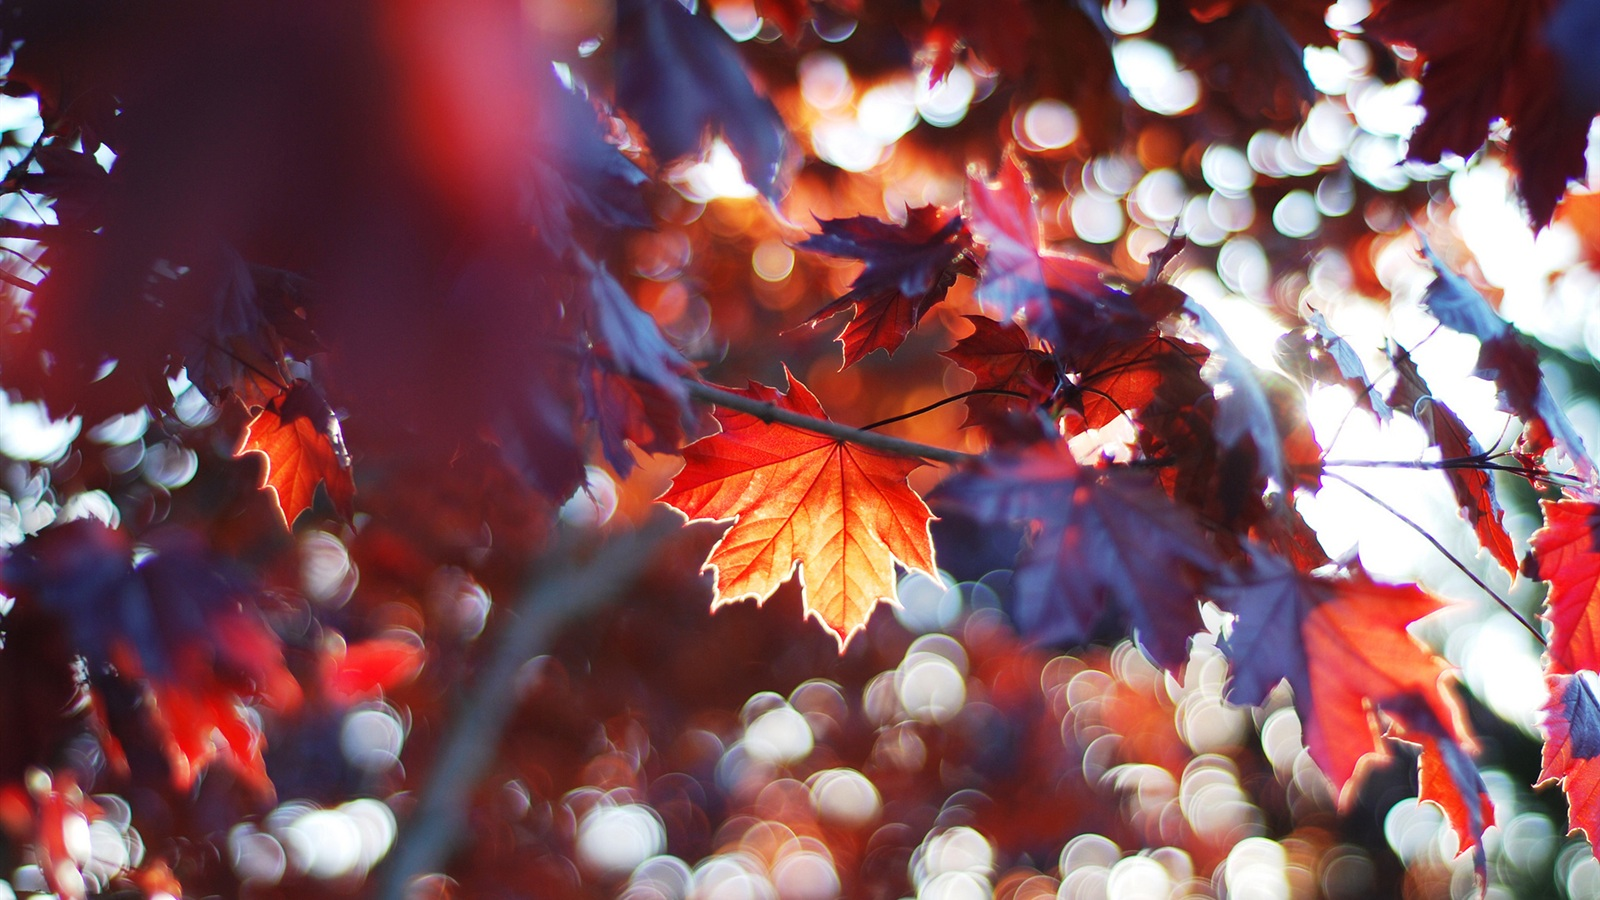 Labels Red Autumn Leaves Photography Hd Wallpapers For: Wallpaper Autumn Leaves, Red Maple Leaves 1920x1200 HD